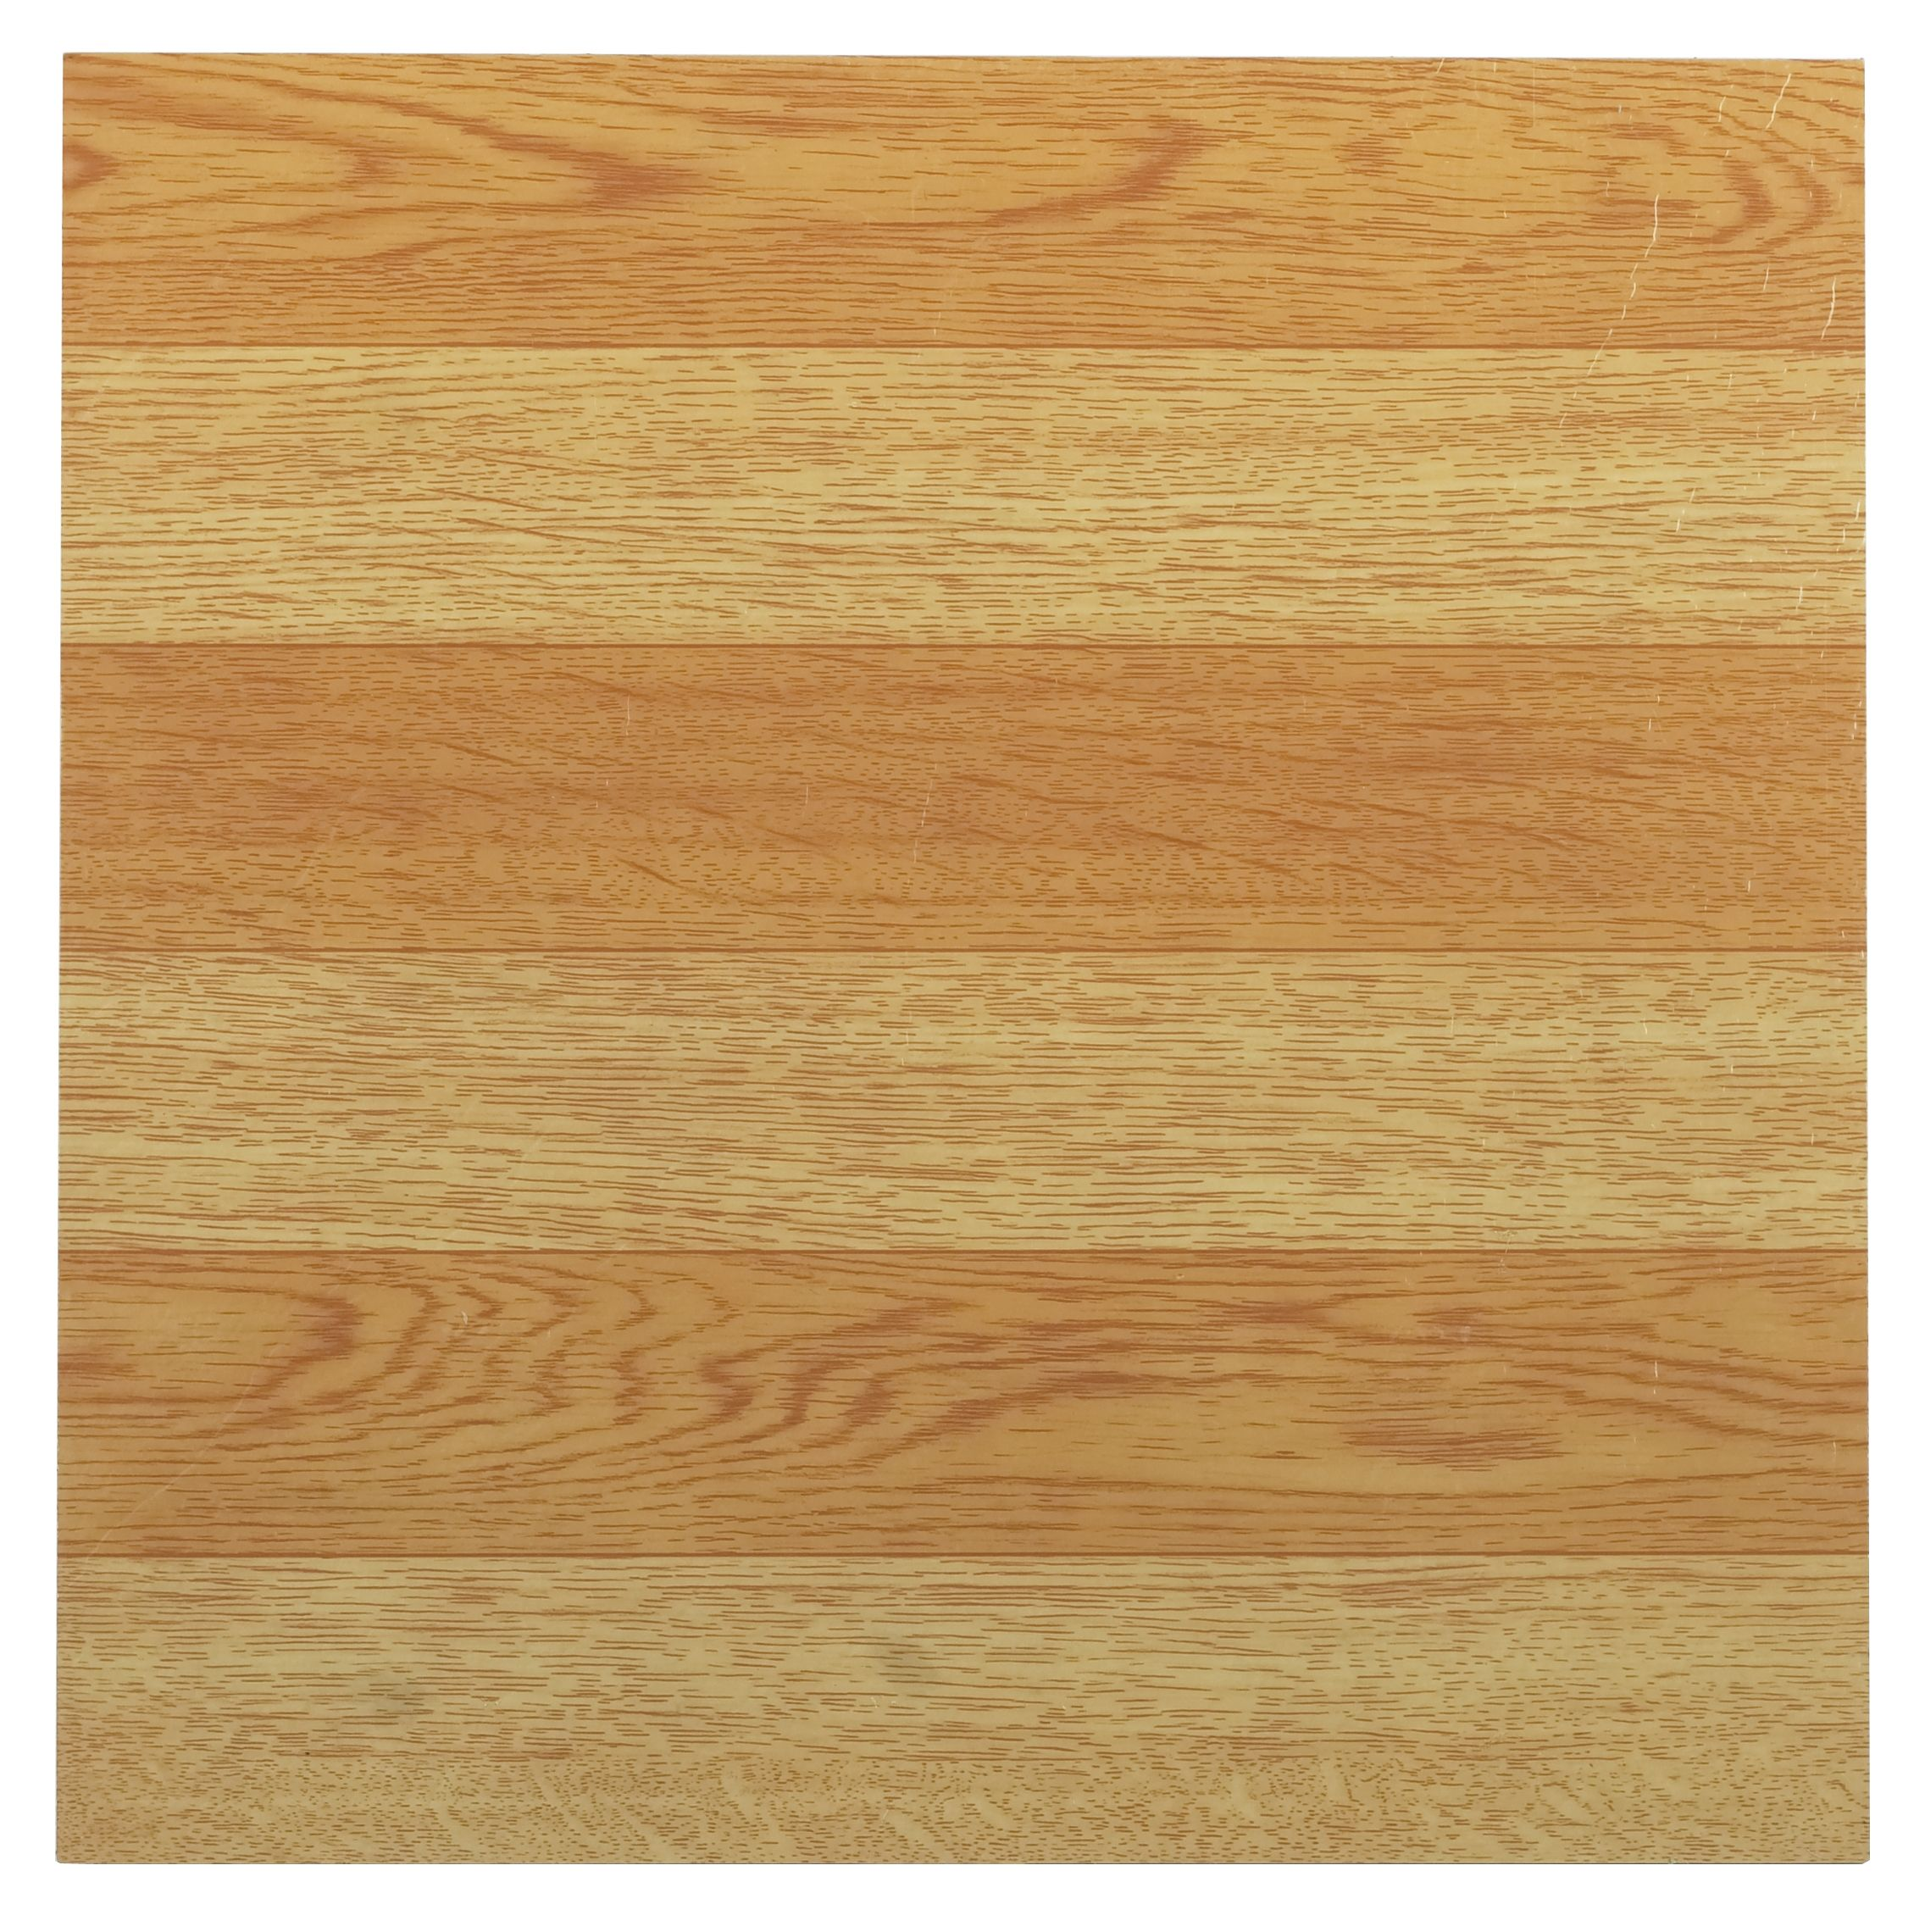 Achim tivoli light oak planklook inch x inch self adhesive